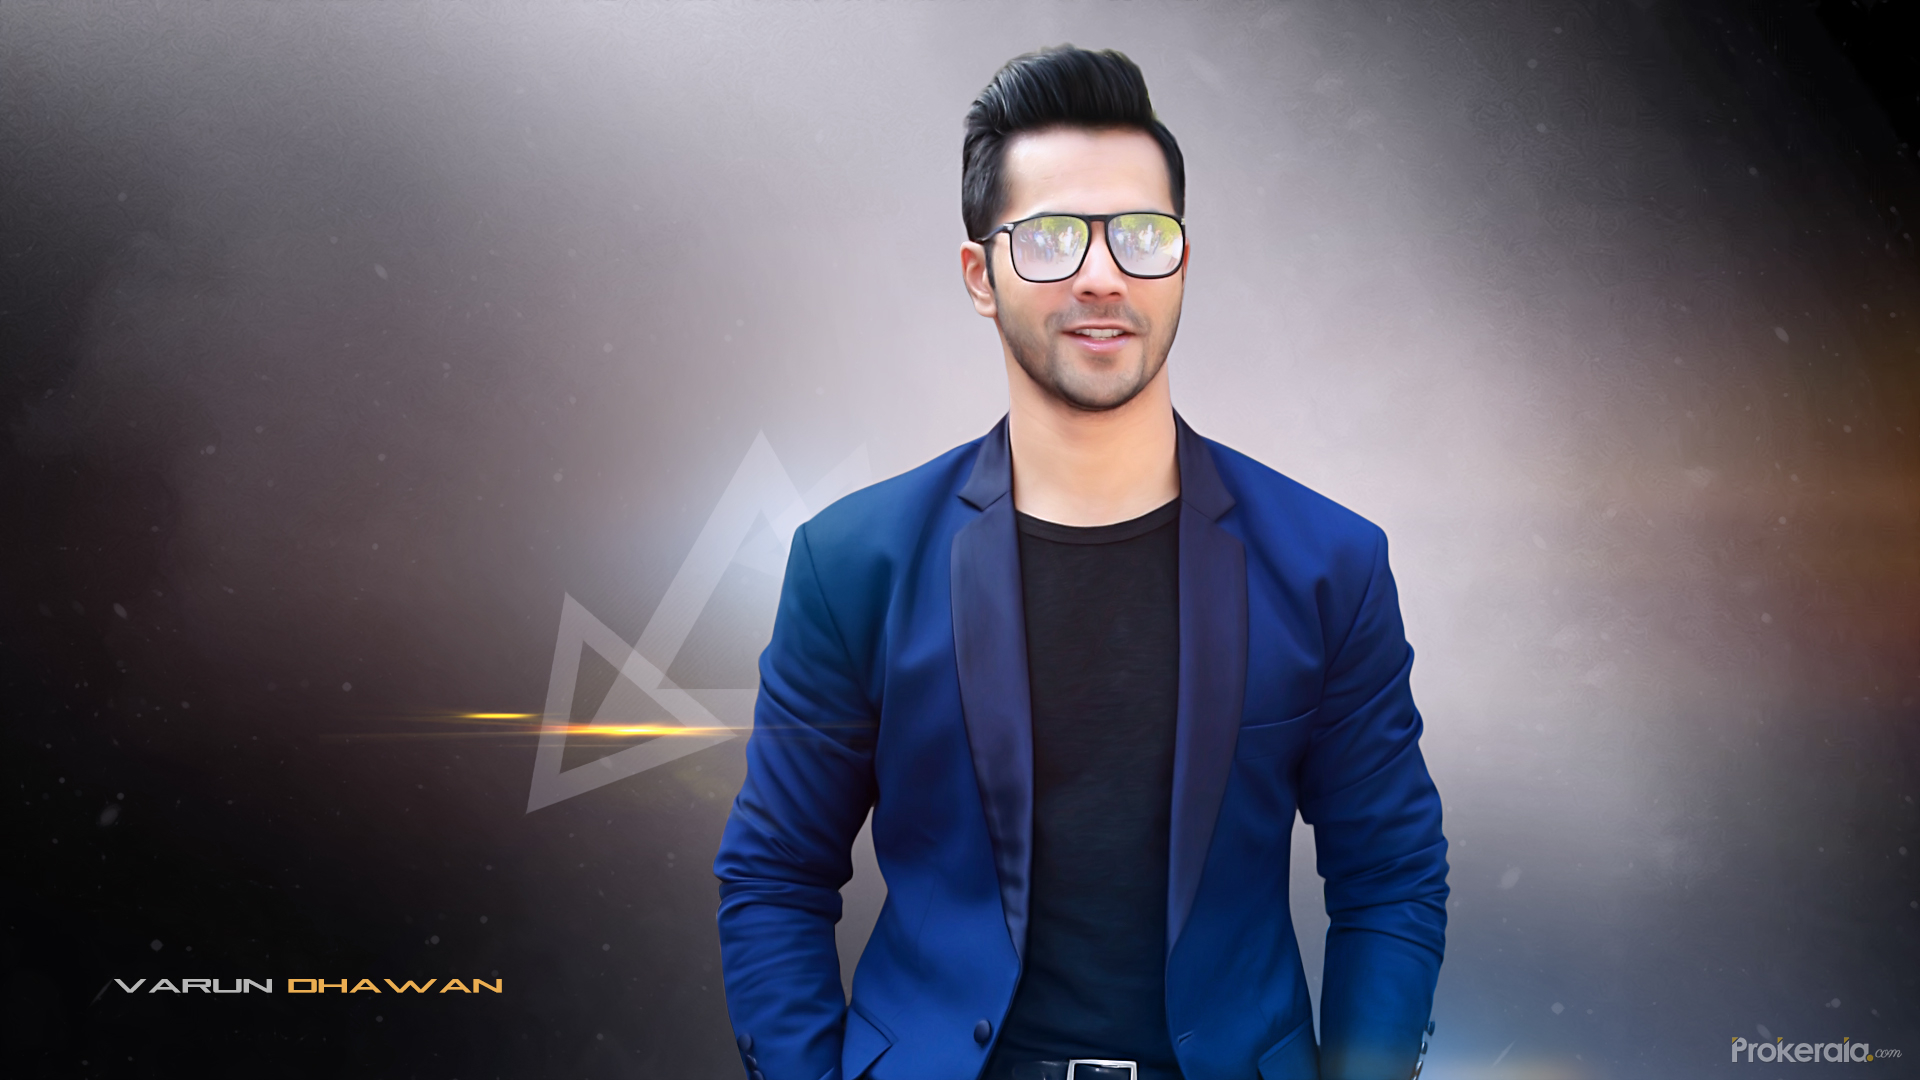 Varun Dhawan Download Wallpaper